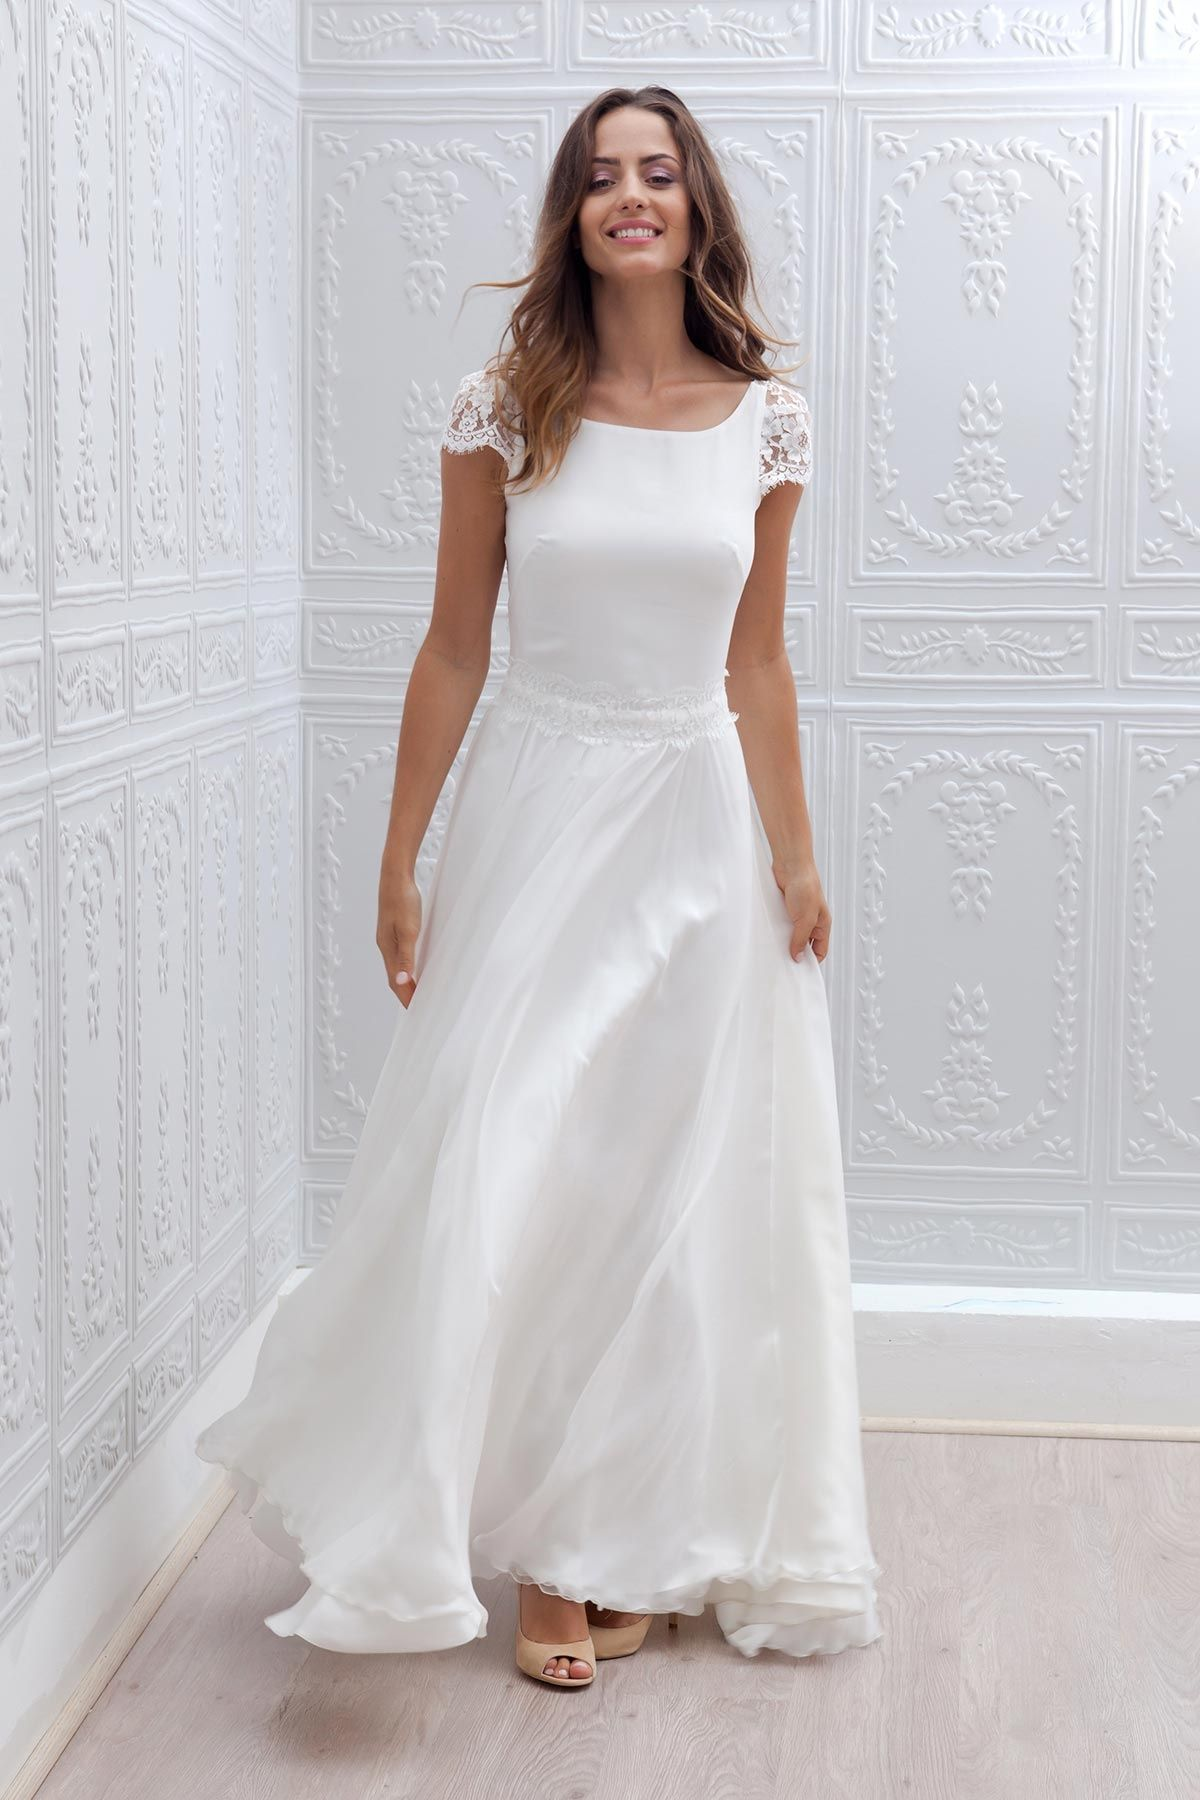 Simple Short Wedding Dress With Sleeves